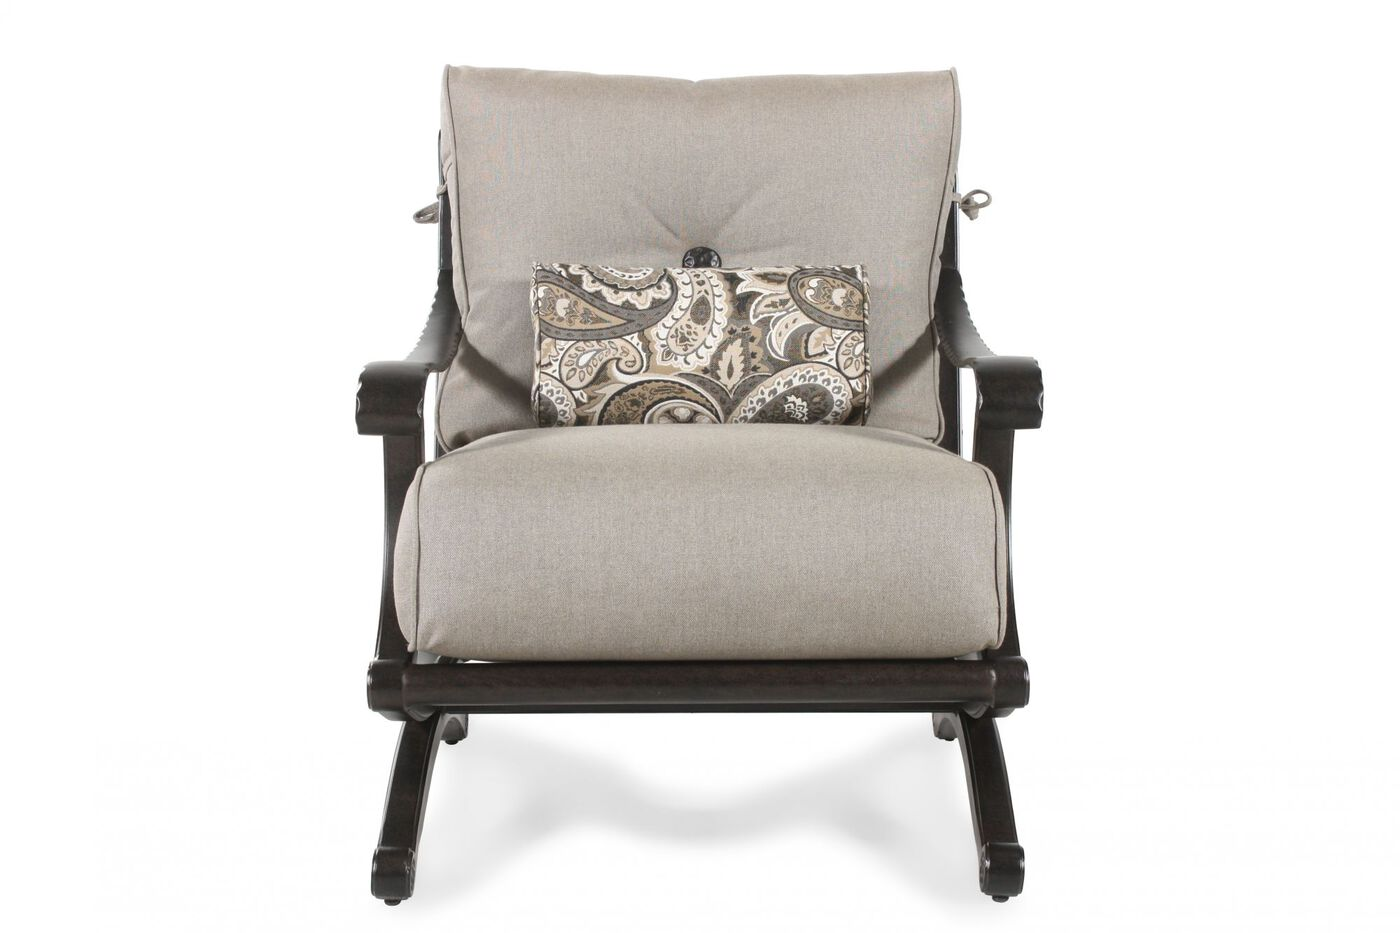 Mathis Brothers Patio Furniture castelle telluride patio lounge chair | mathis brothers furniture